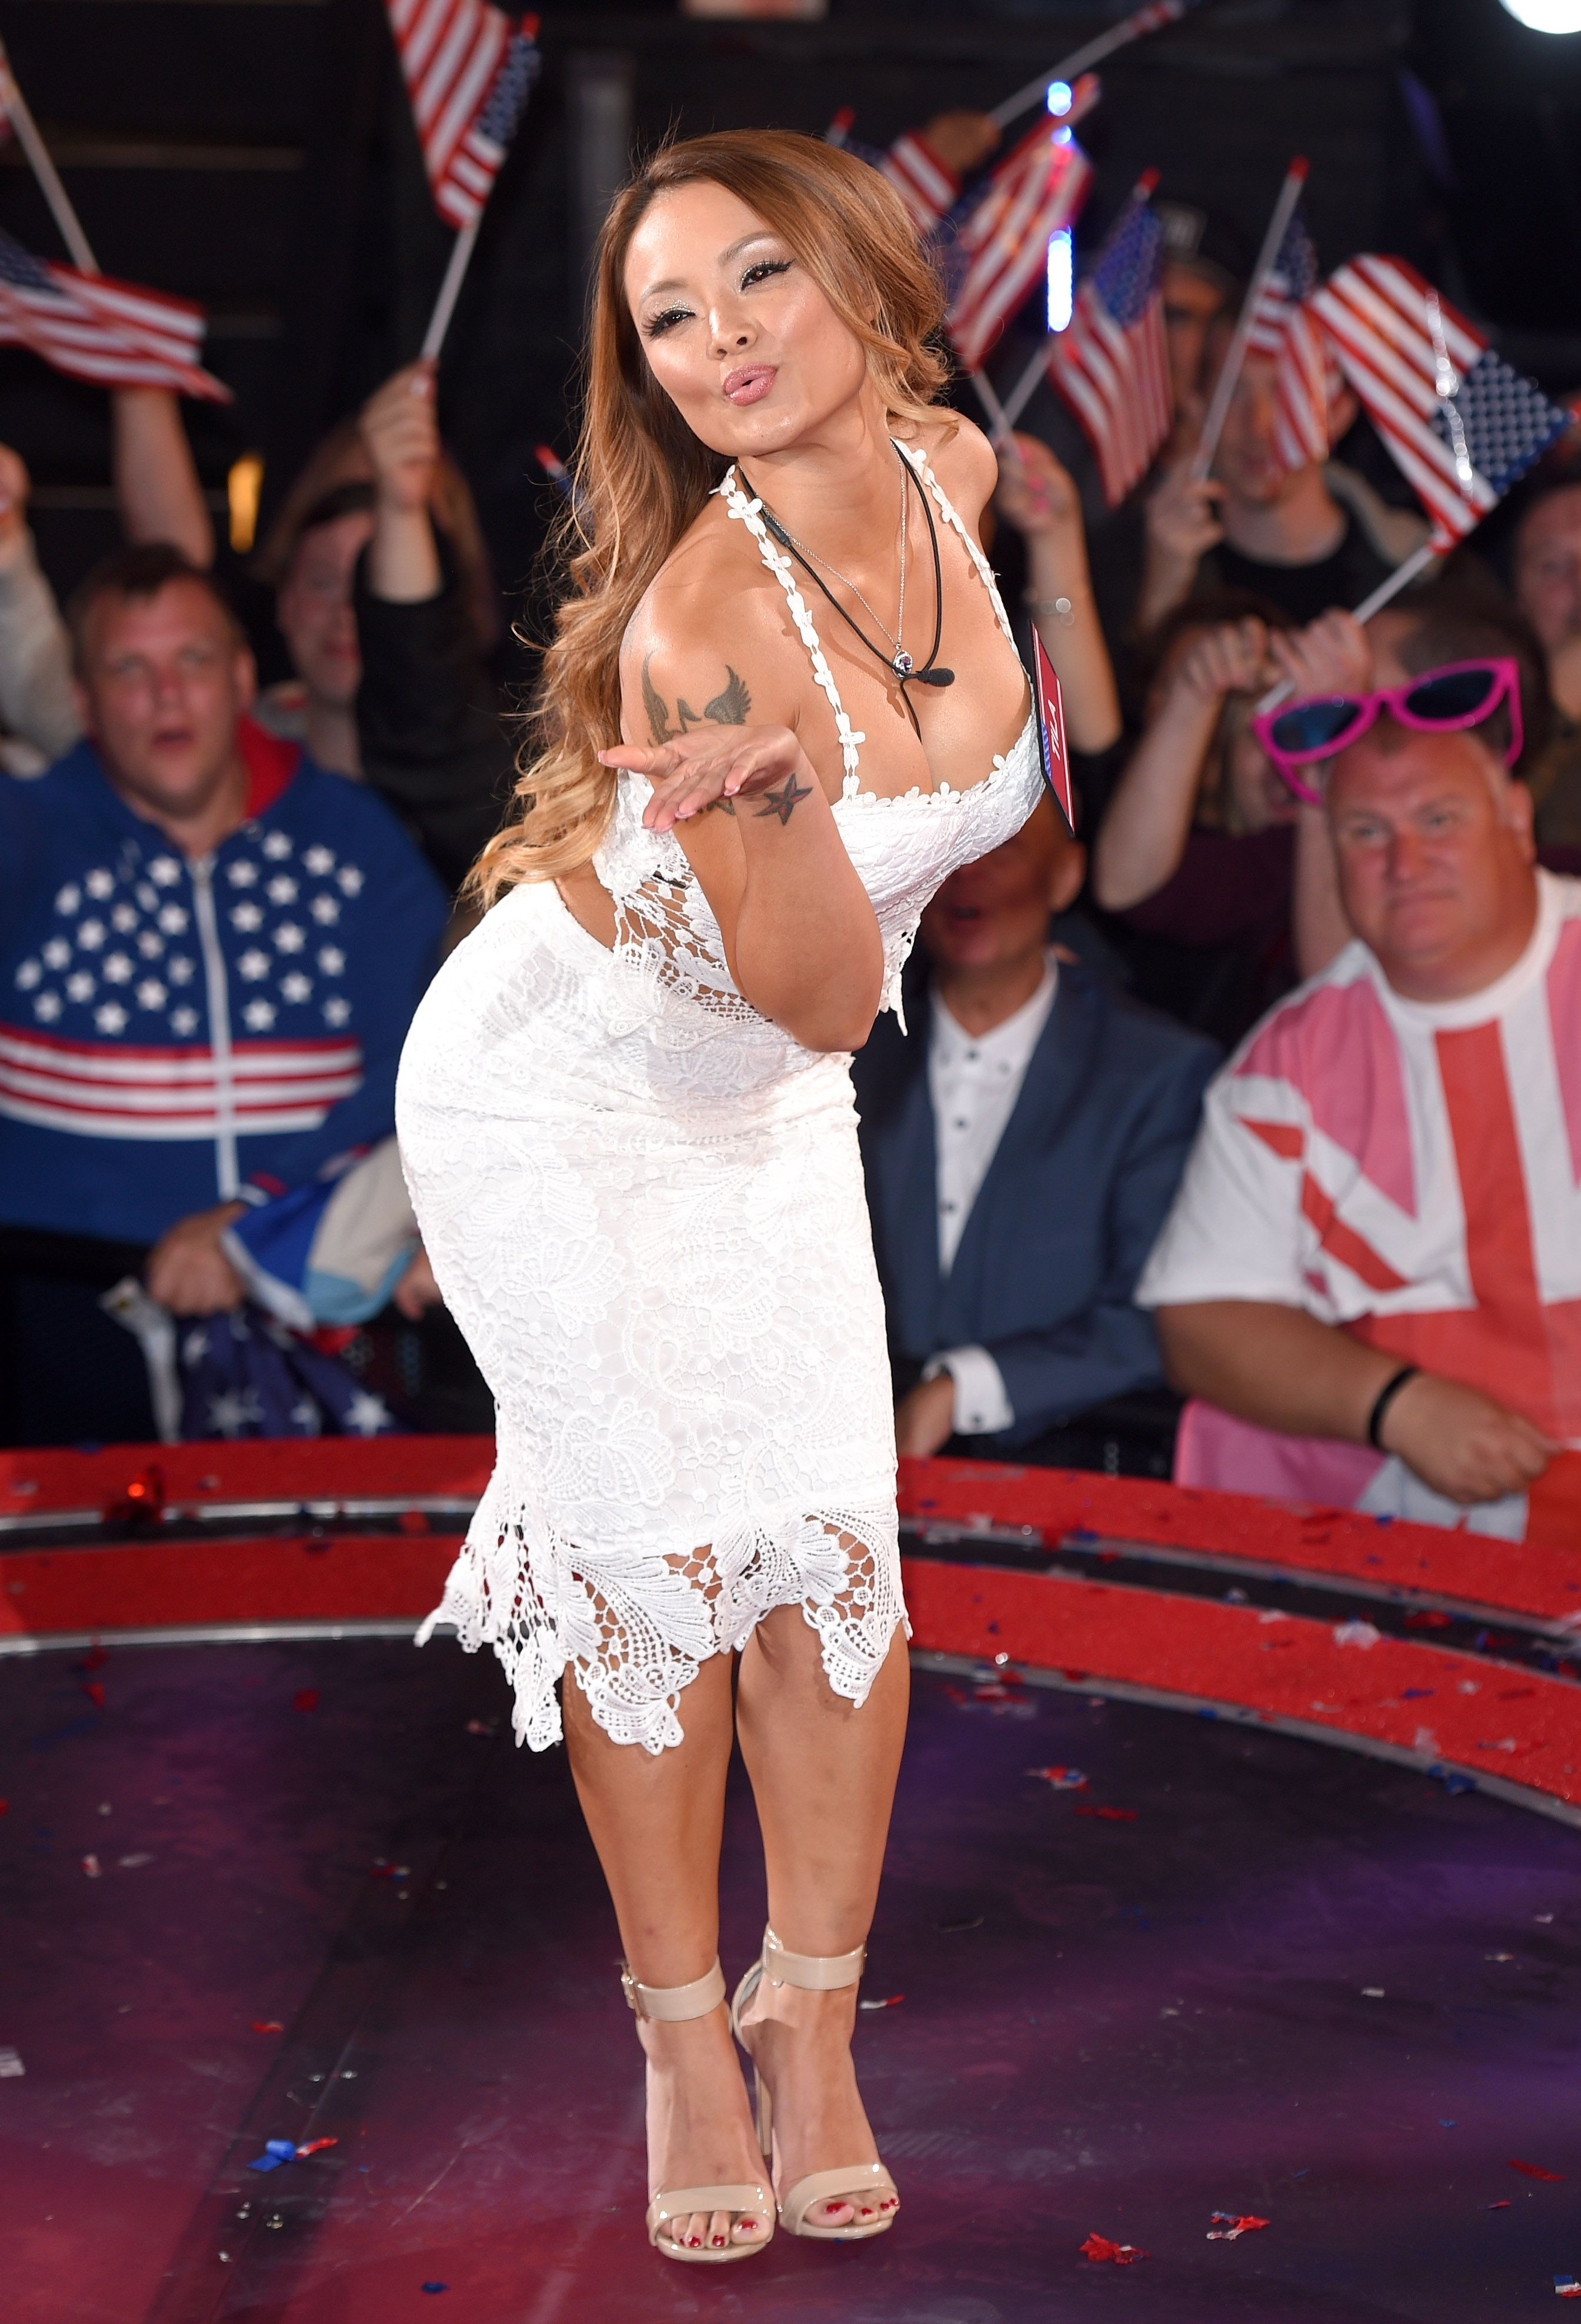 Hacked Tila Tequila nude (81 photos), Ass, Leaked, Boobs, underwear 2006